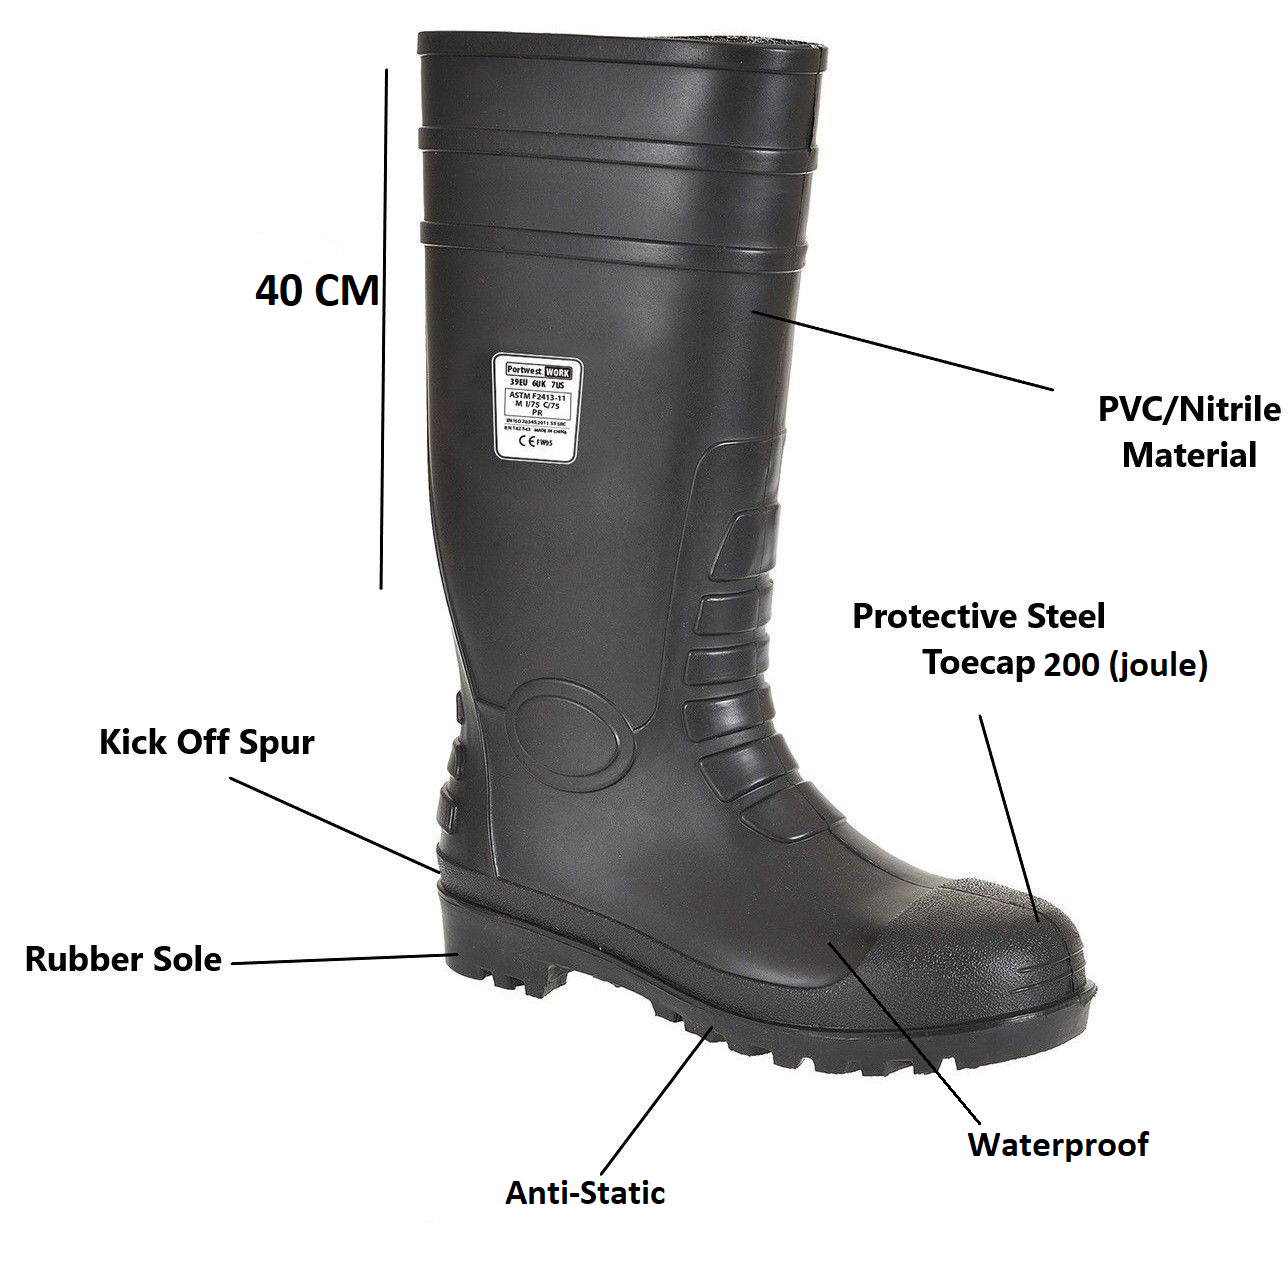 Portwest Safety Wellington Boots Shoes Wellies Steel Toe Cap Waterproof FW94